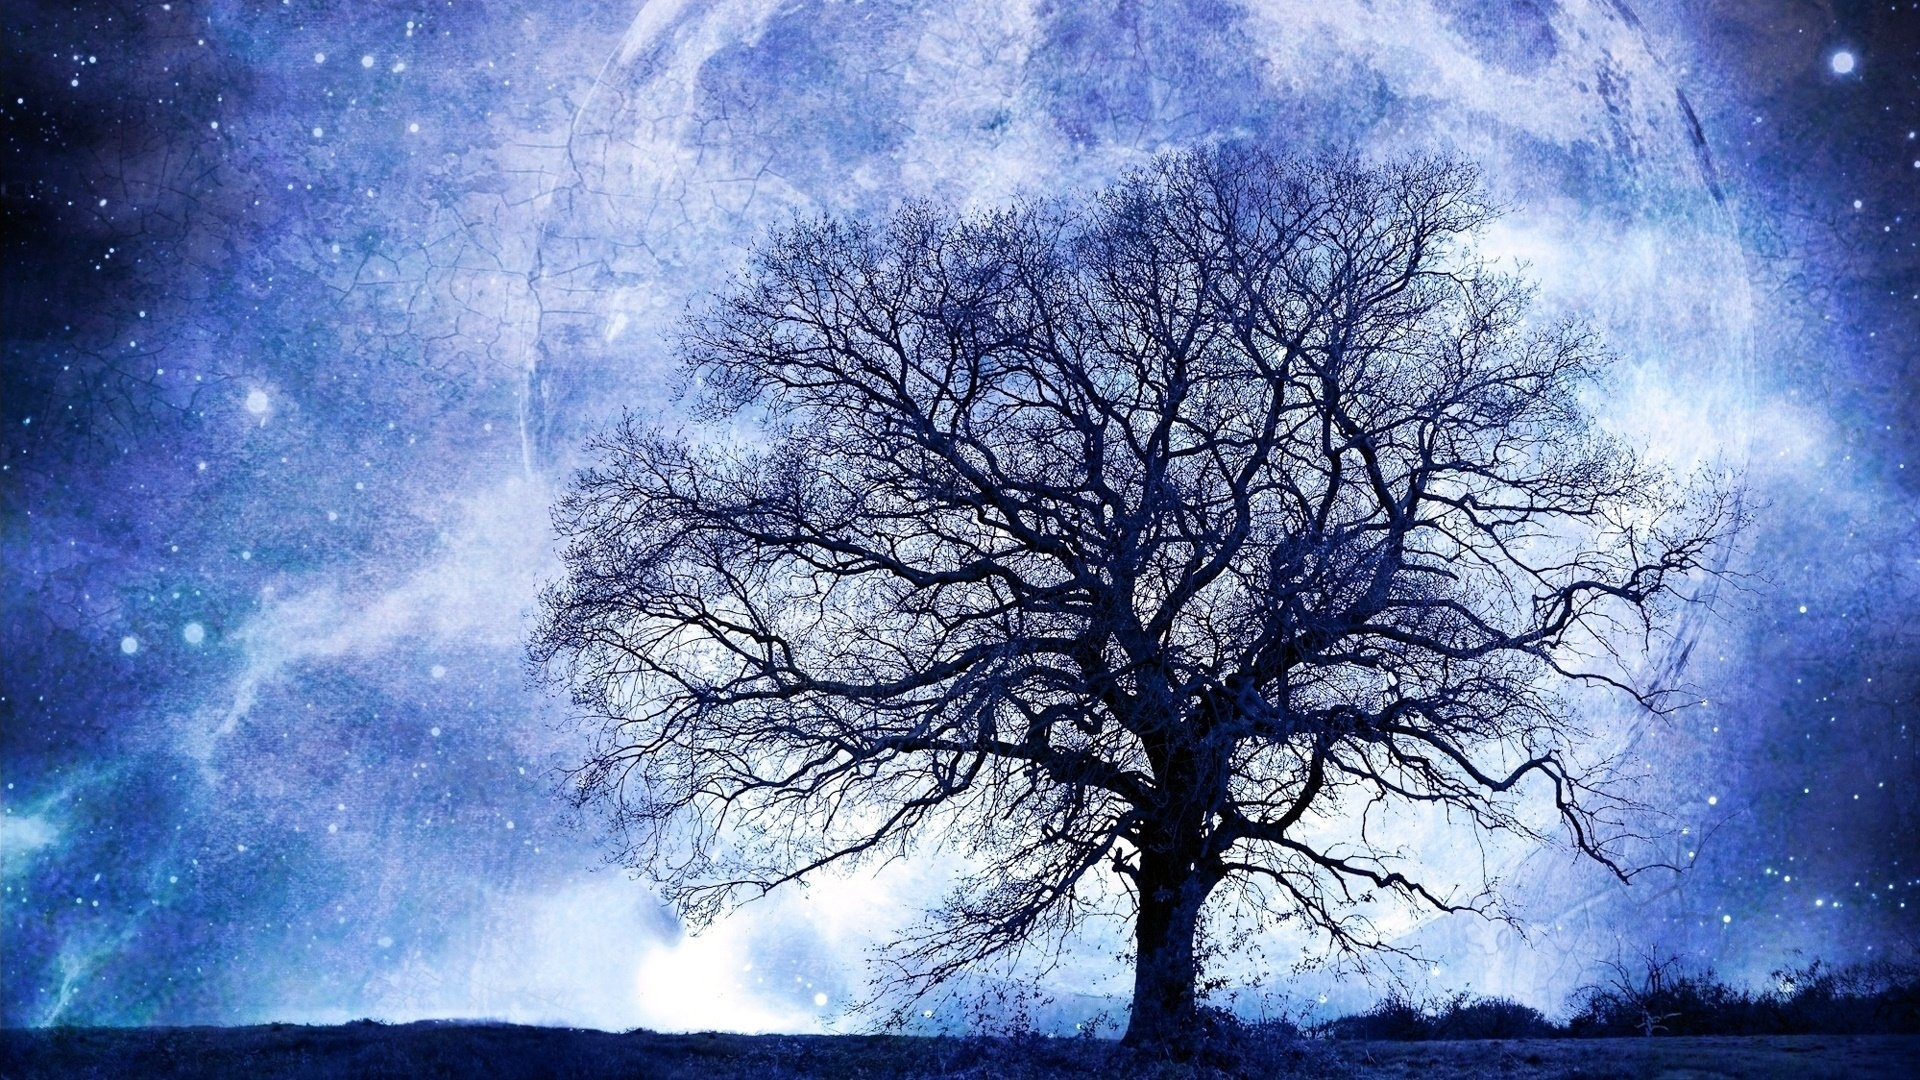 Tree And Space desktop wallpaper hd